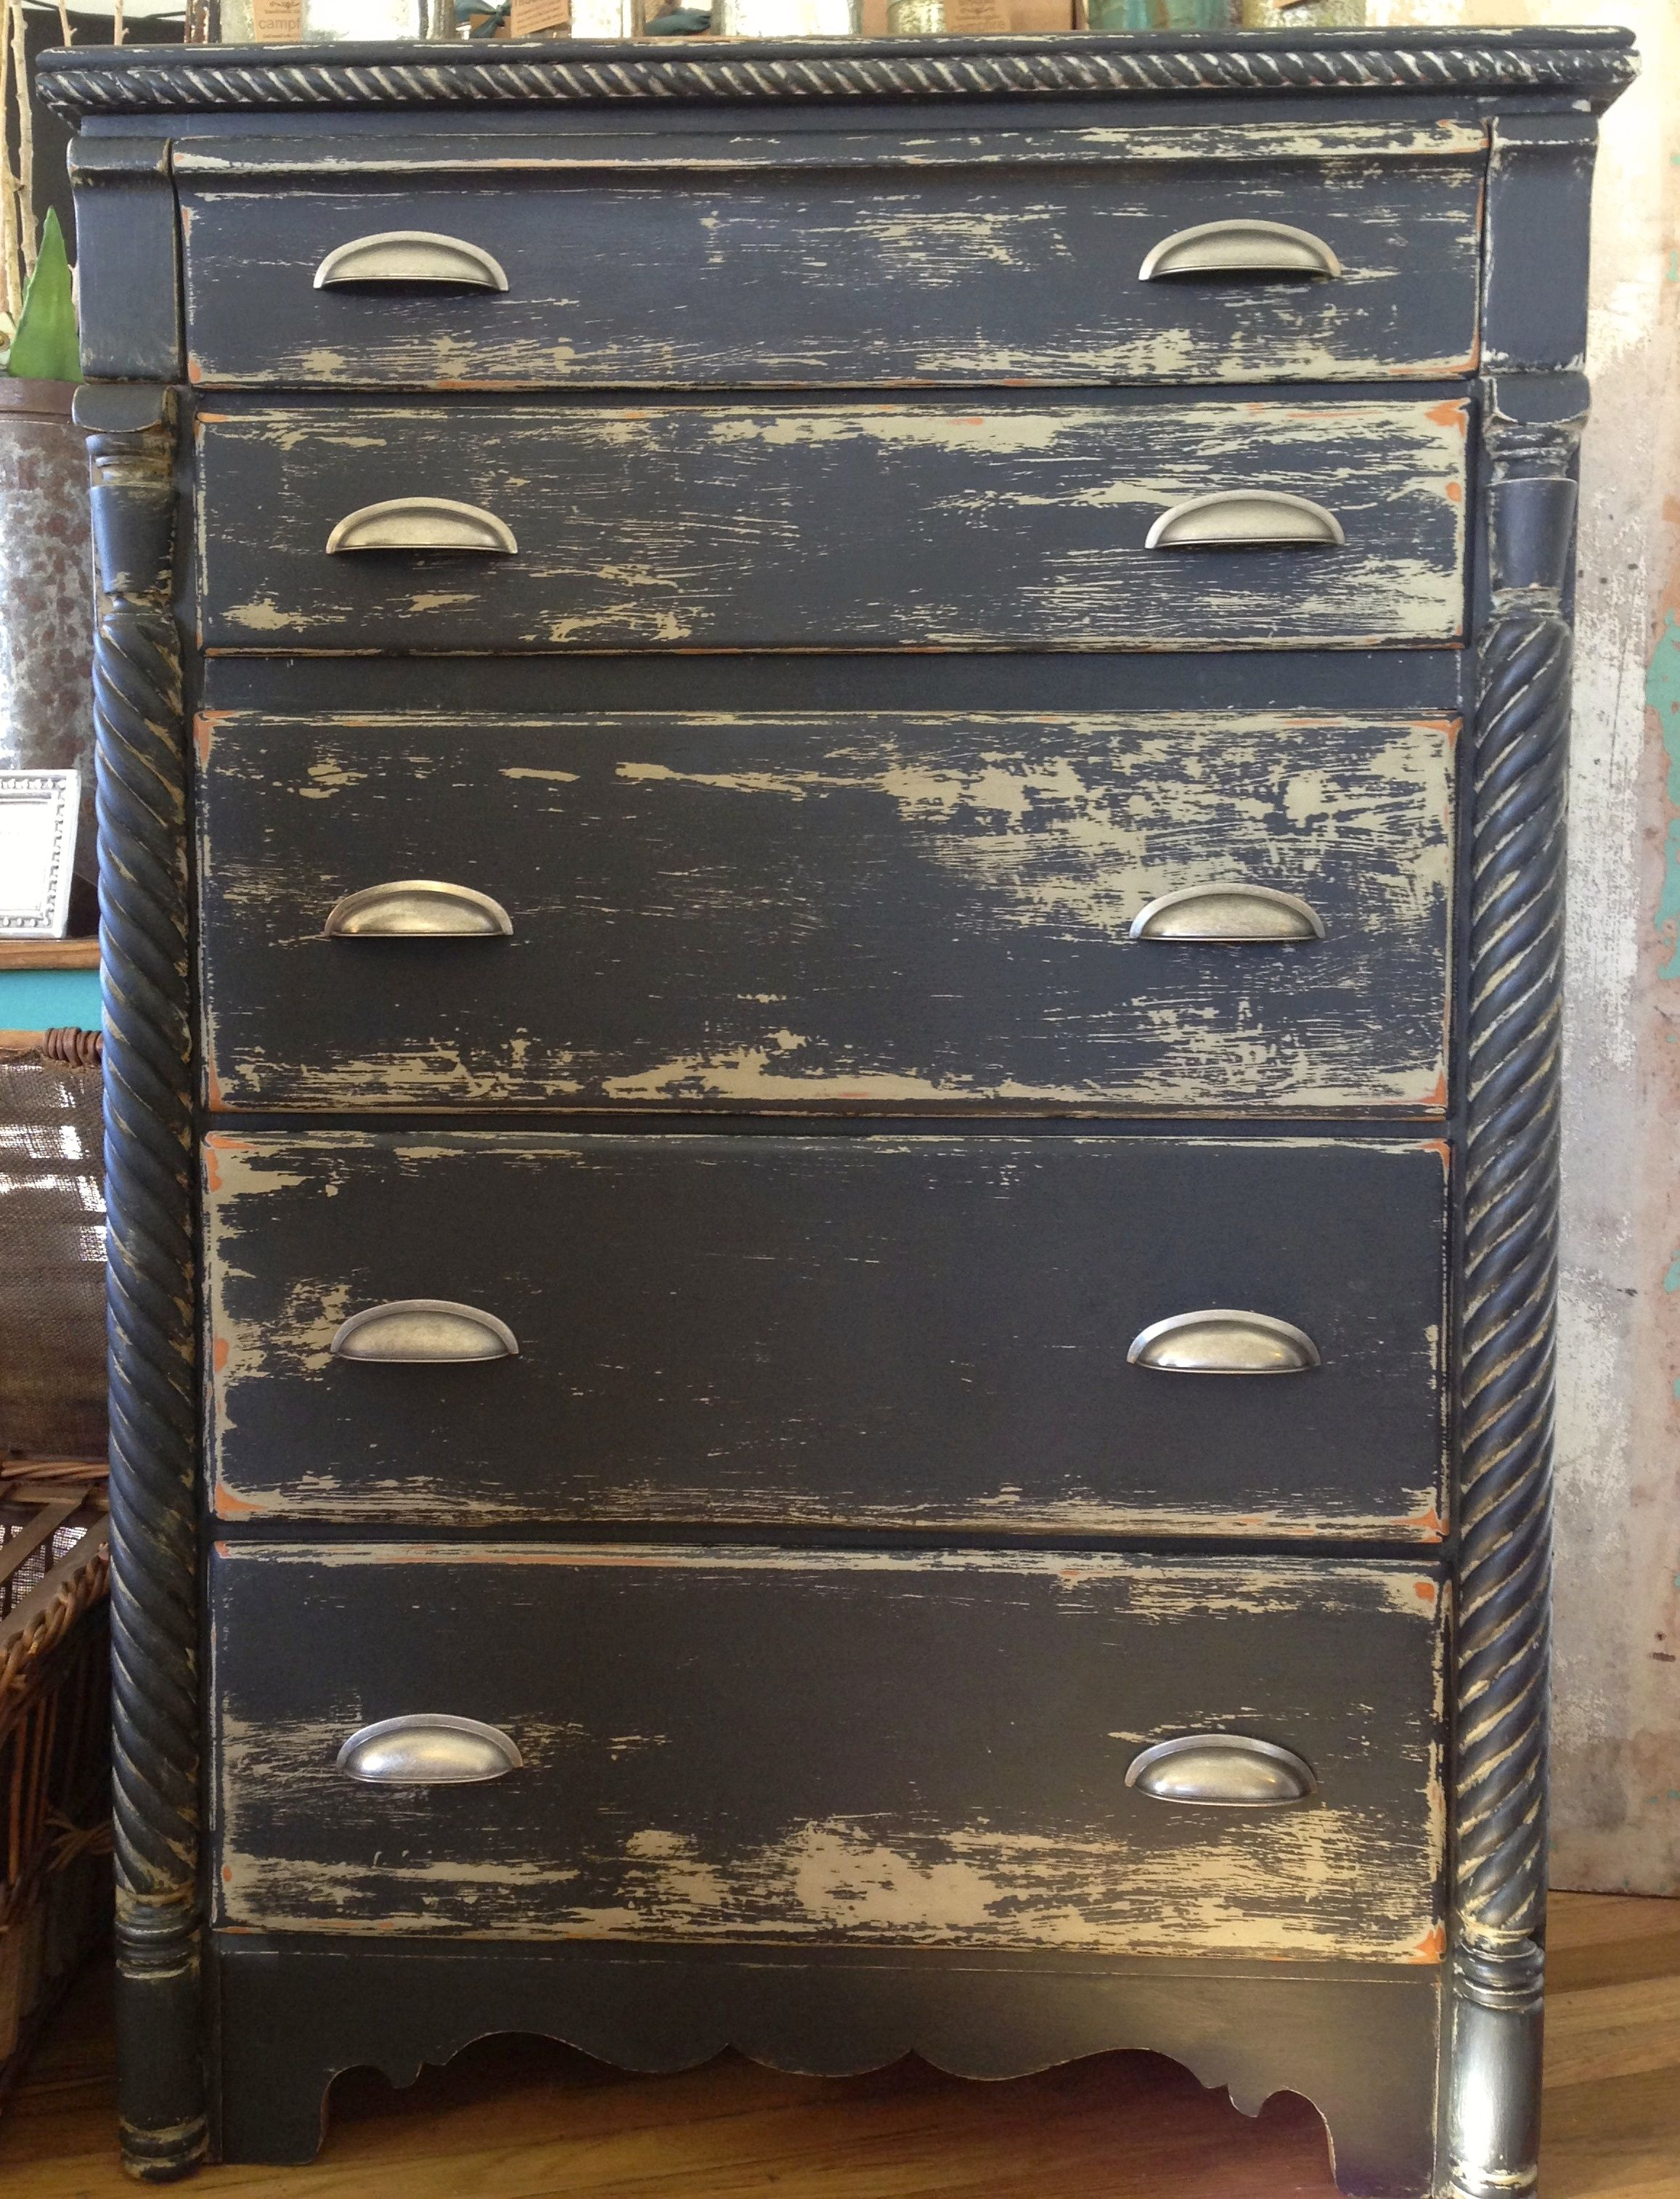 Chest layered in Maison Blanche vintage furniture